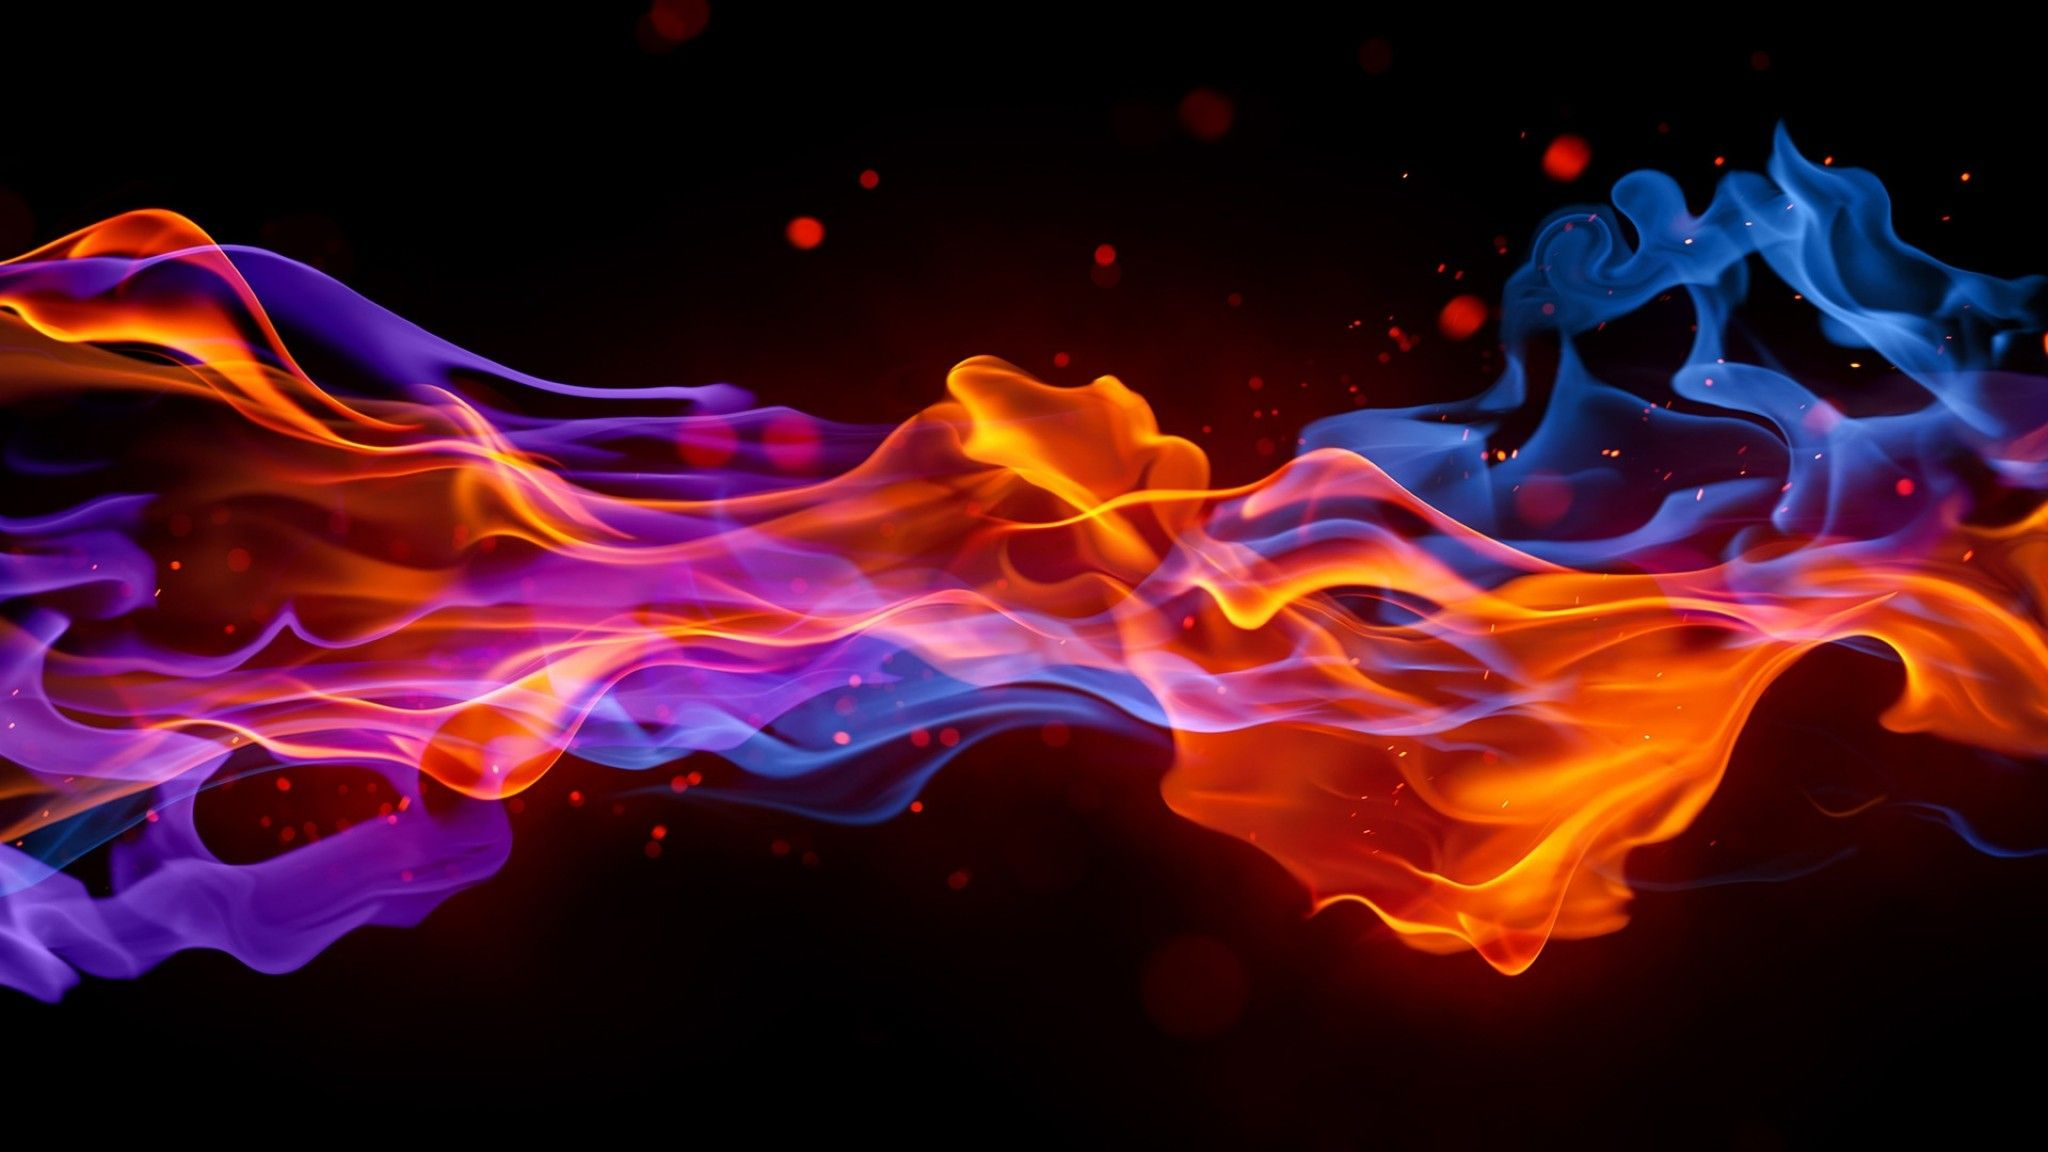 2048x1152 Download Wallpaper 2048x1152 Smoke Fire Bright